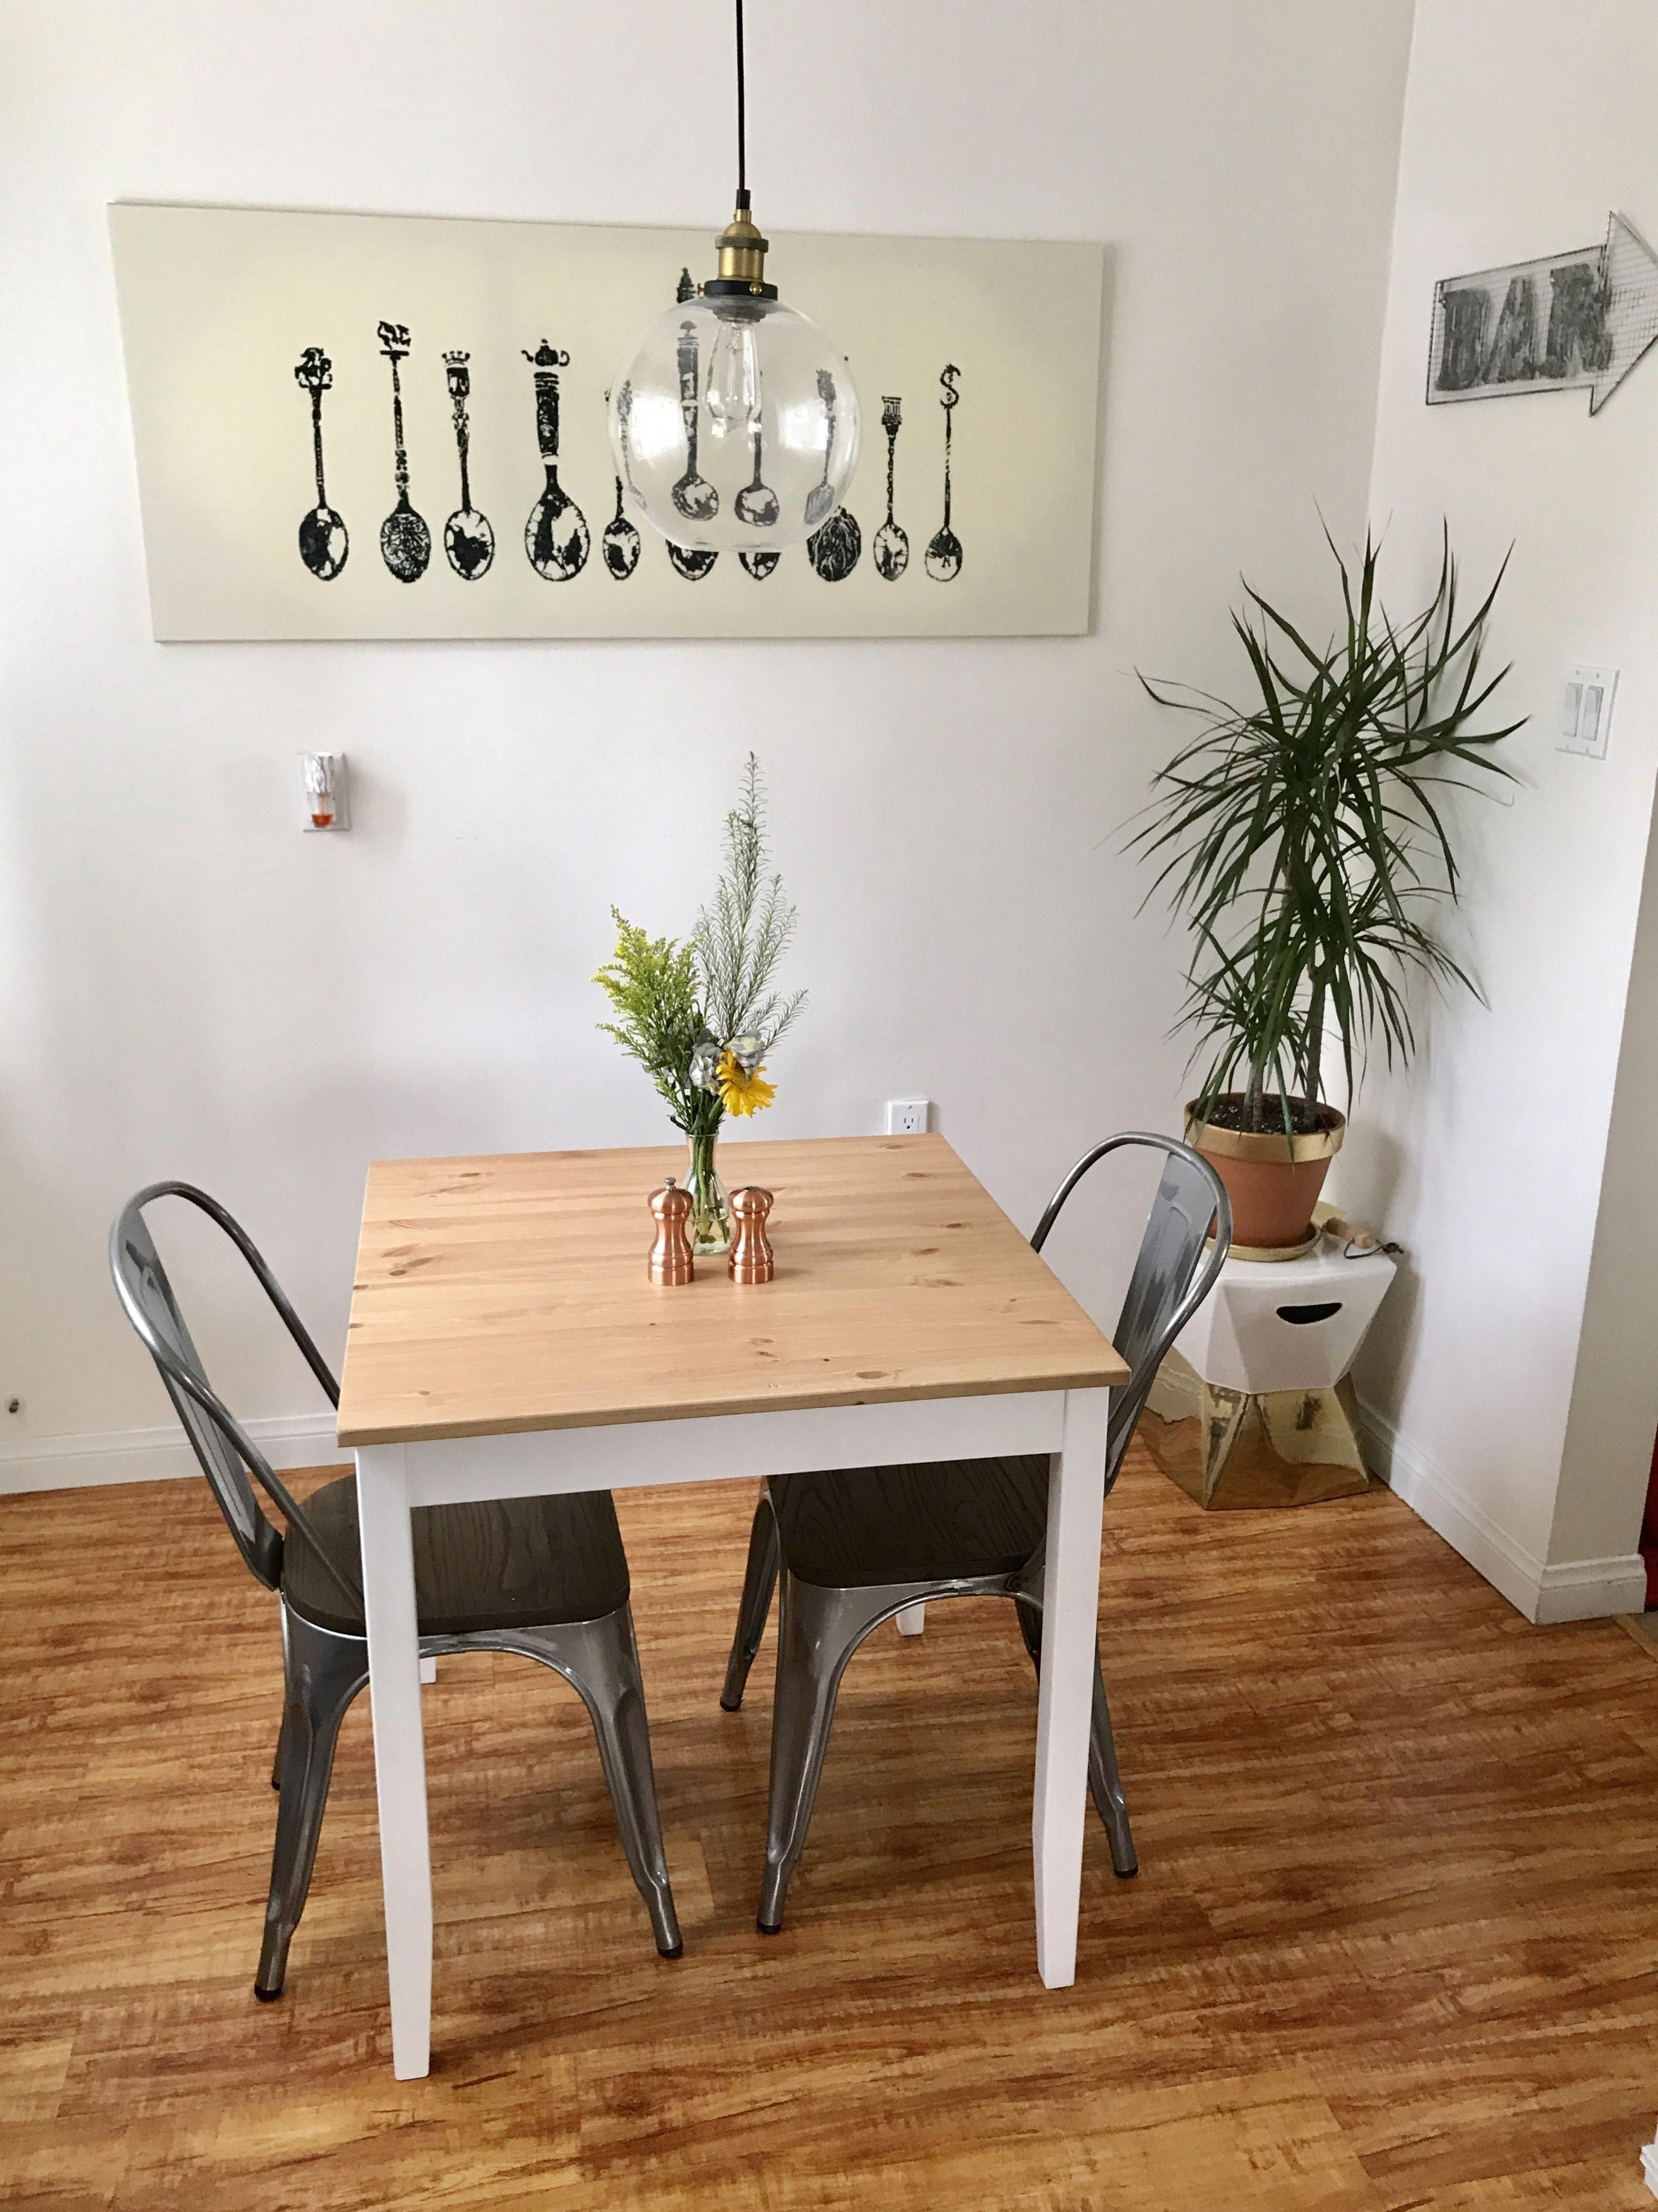 Another Little Redecorating For The Breakfast Nook Klorup Canvas And Lerhamn Table Fr Small Kitchen Design Apartment Kitchen Design Small Home Decor Styles